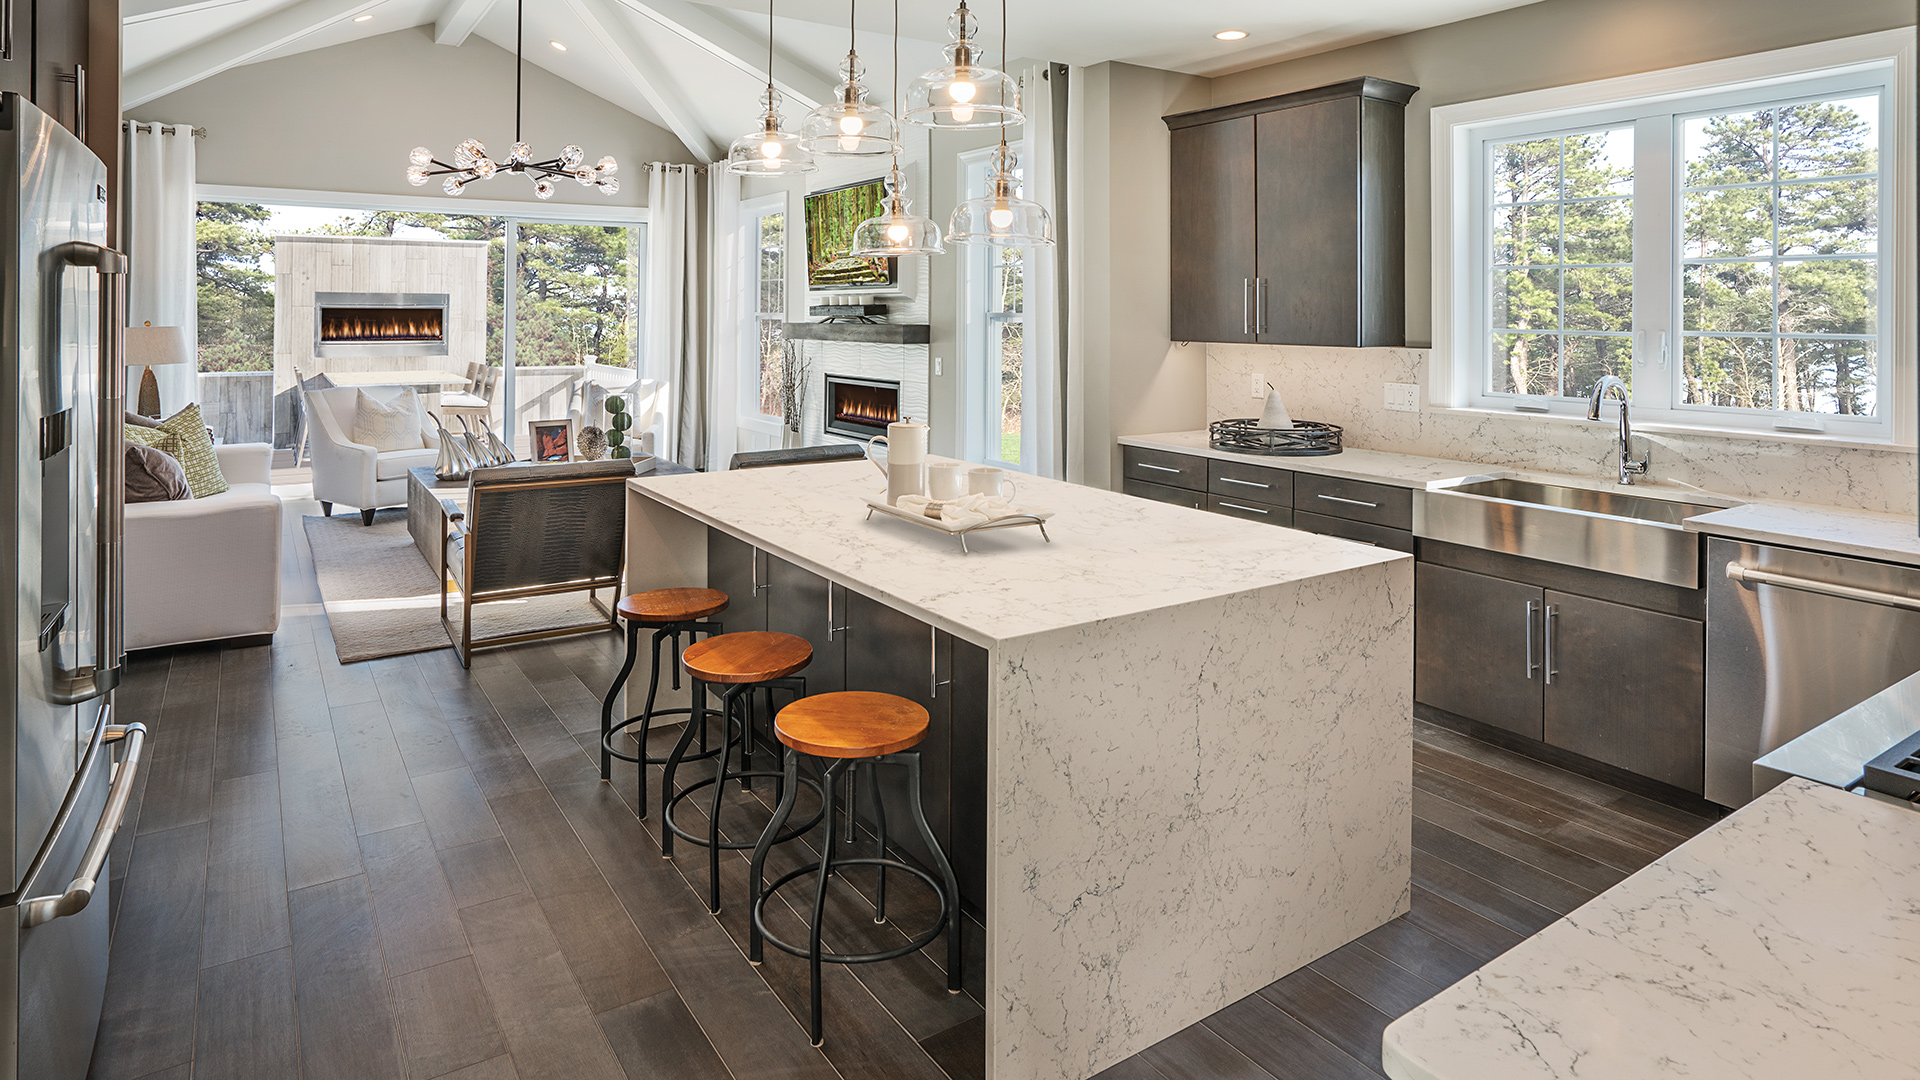 Kitchen opens to great room and outdoor living